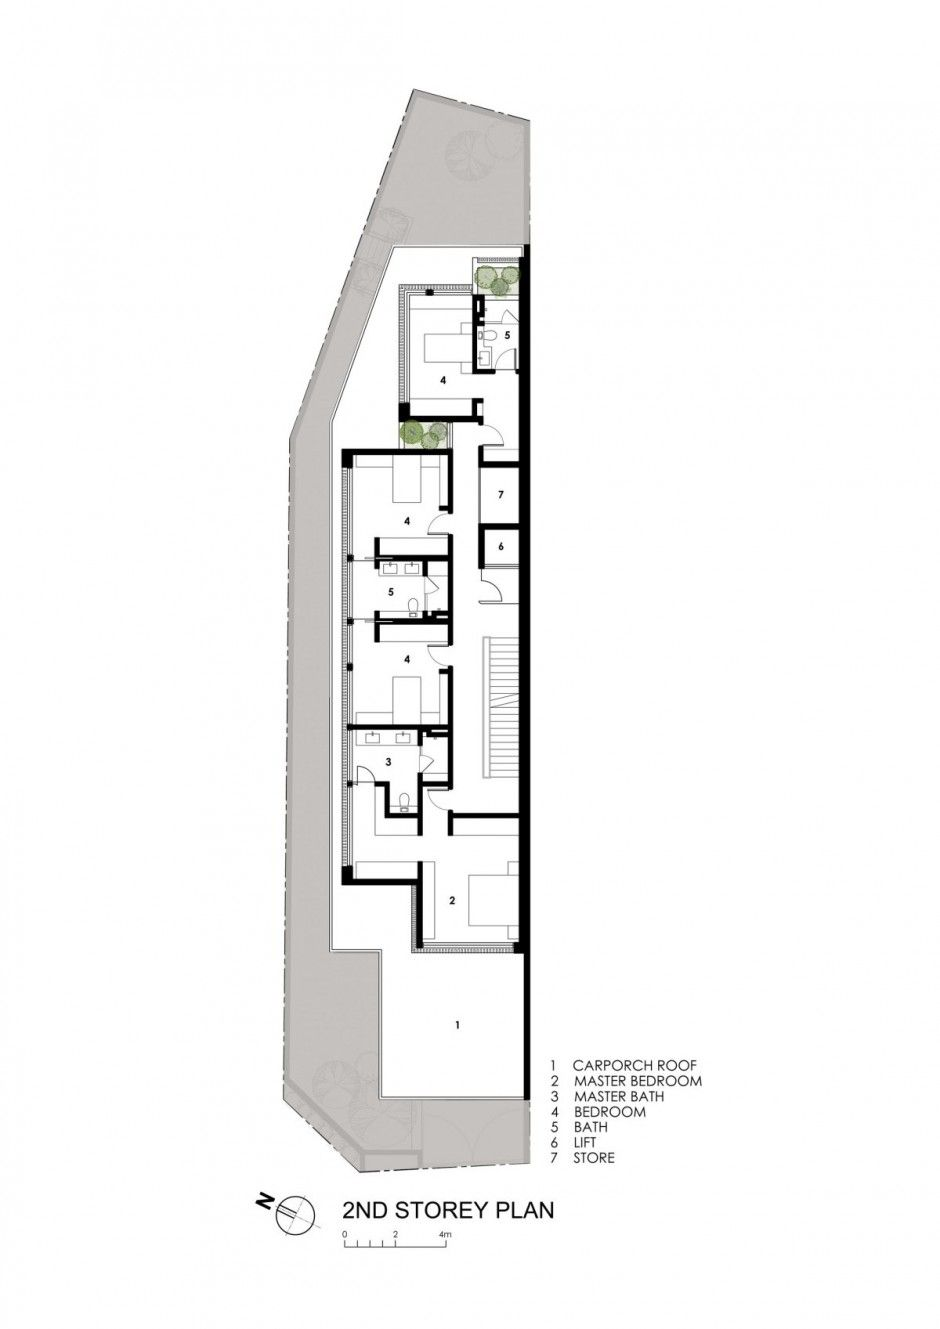 Sunny side house by wallflower architecture architecture for Plans d arkitek